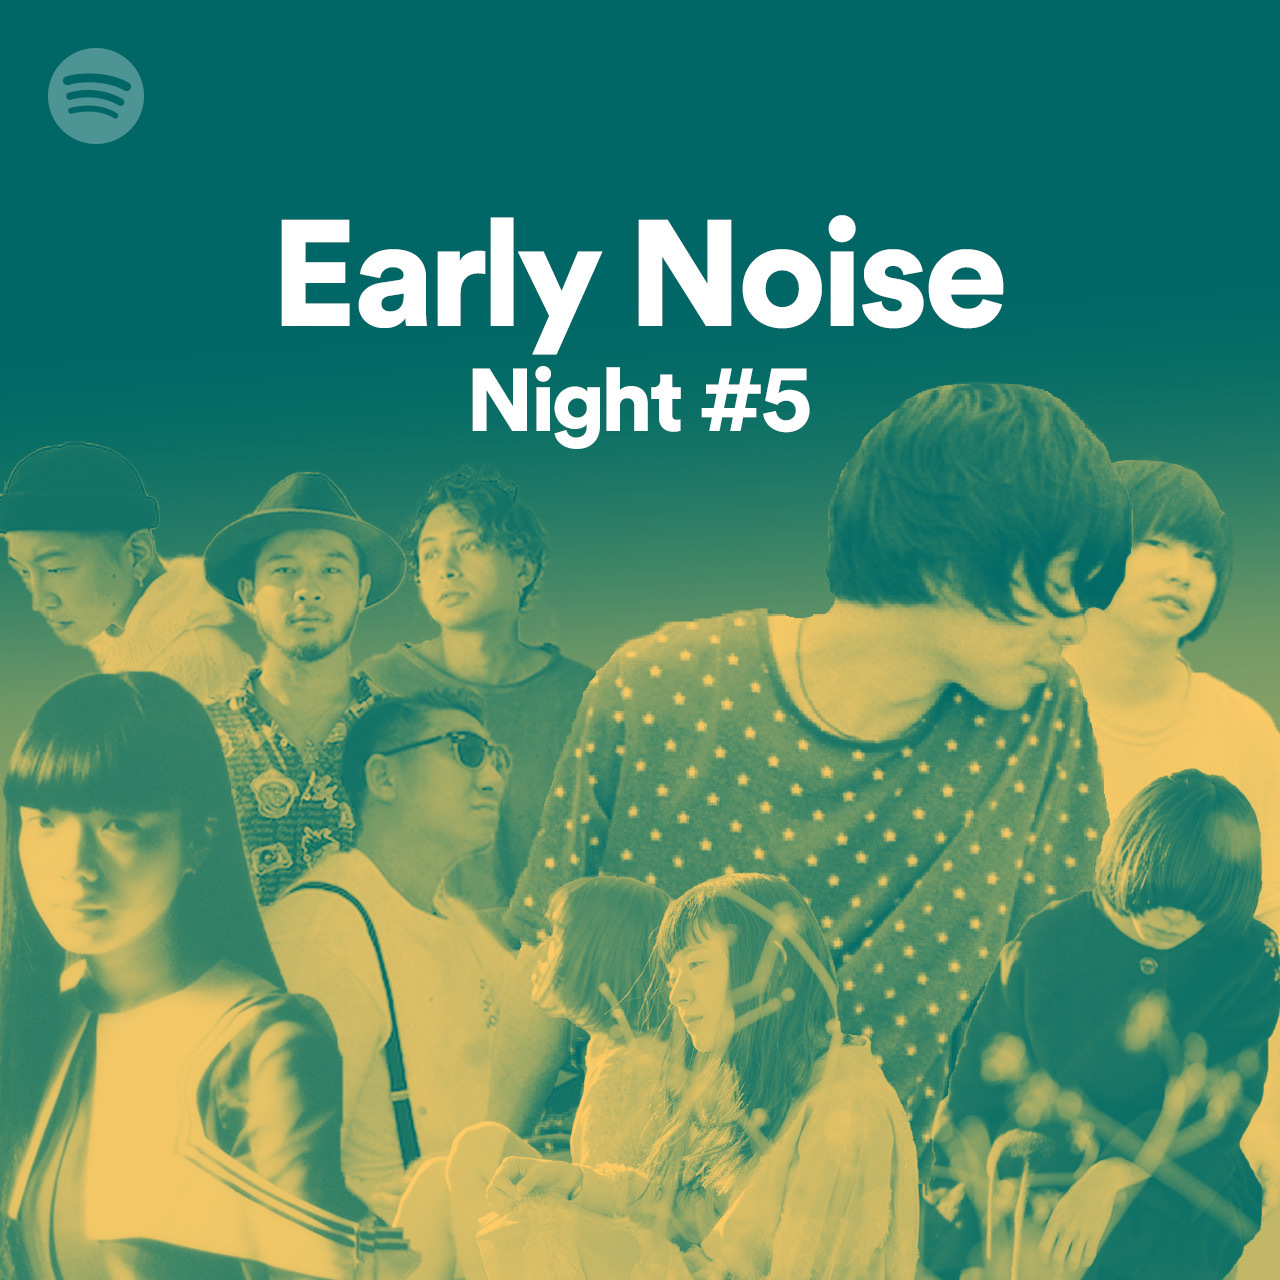 EarlyNoise Night vol.5